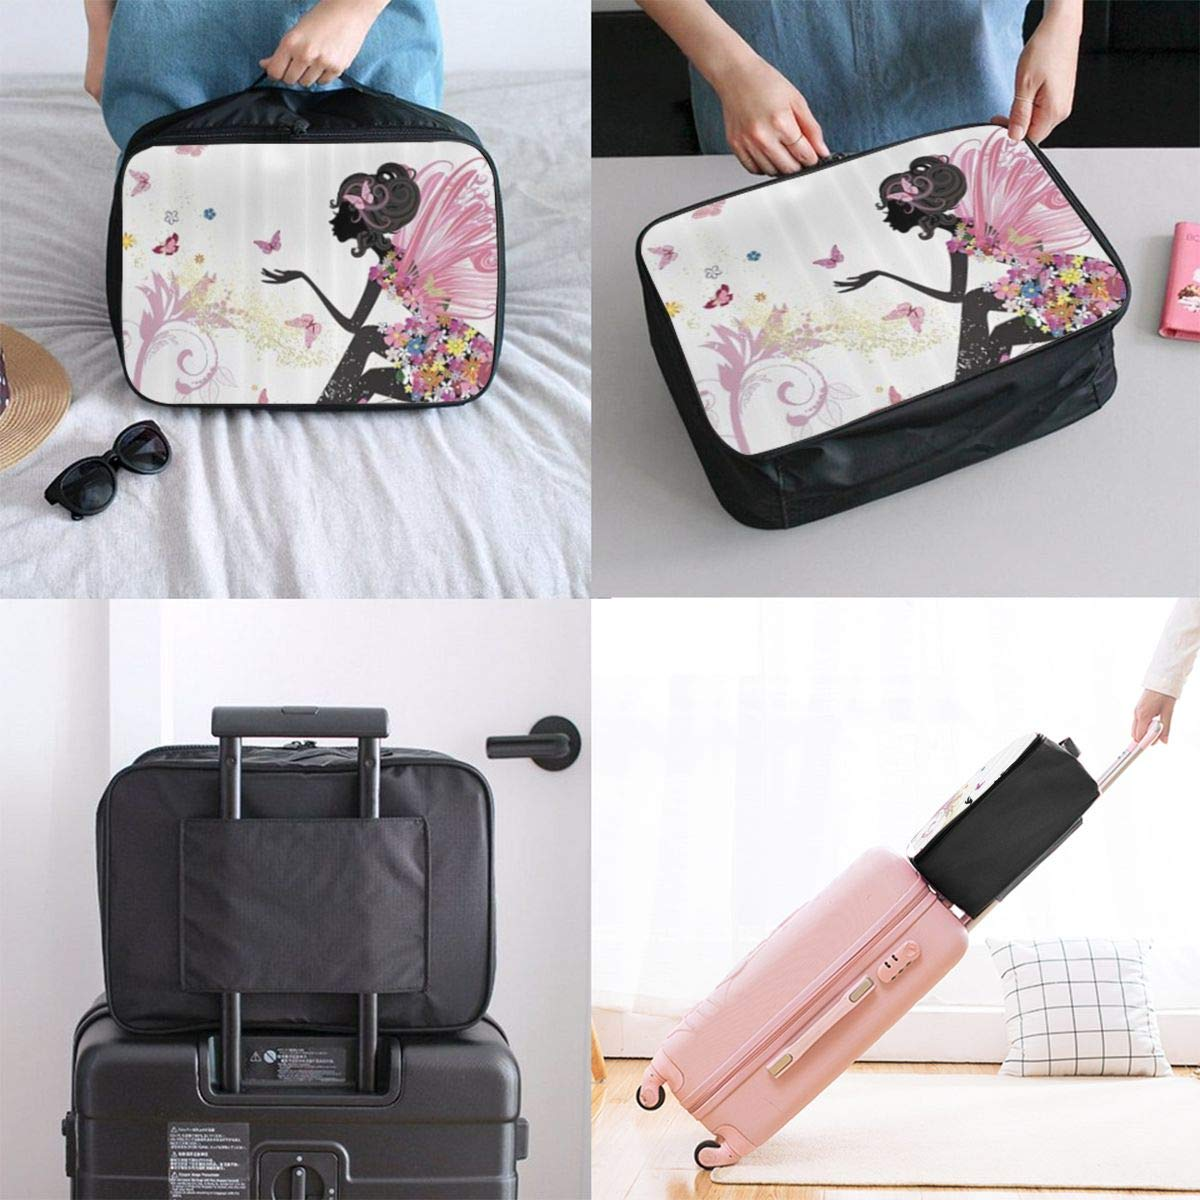 ADGAI Pink Butterfly Girl Canvas Travel Weekender Bag,Fashion Custom Lightweight Large Capacity Portable Luggage Bag,Suitcase Trolley Bag